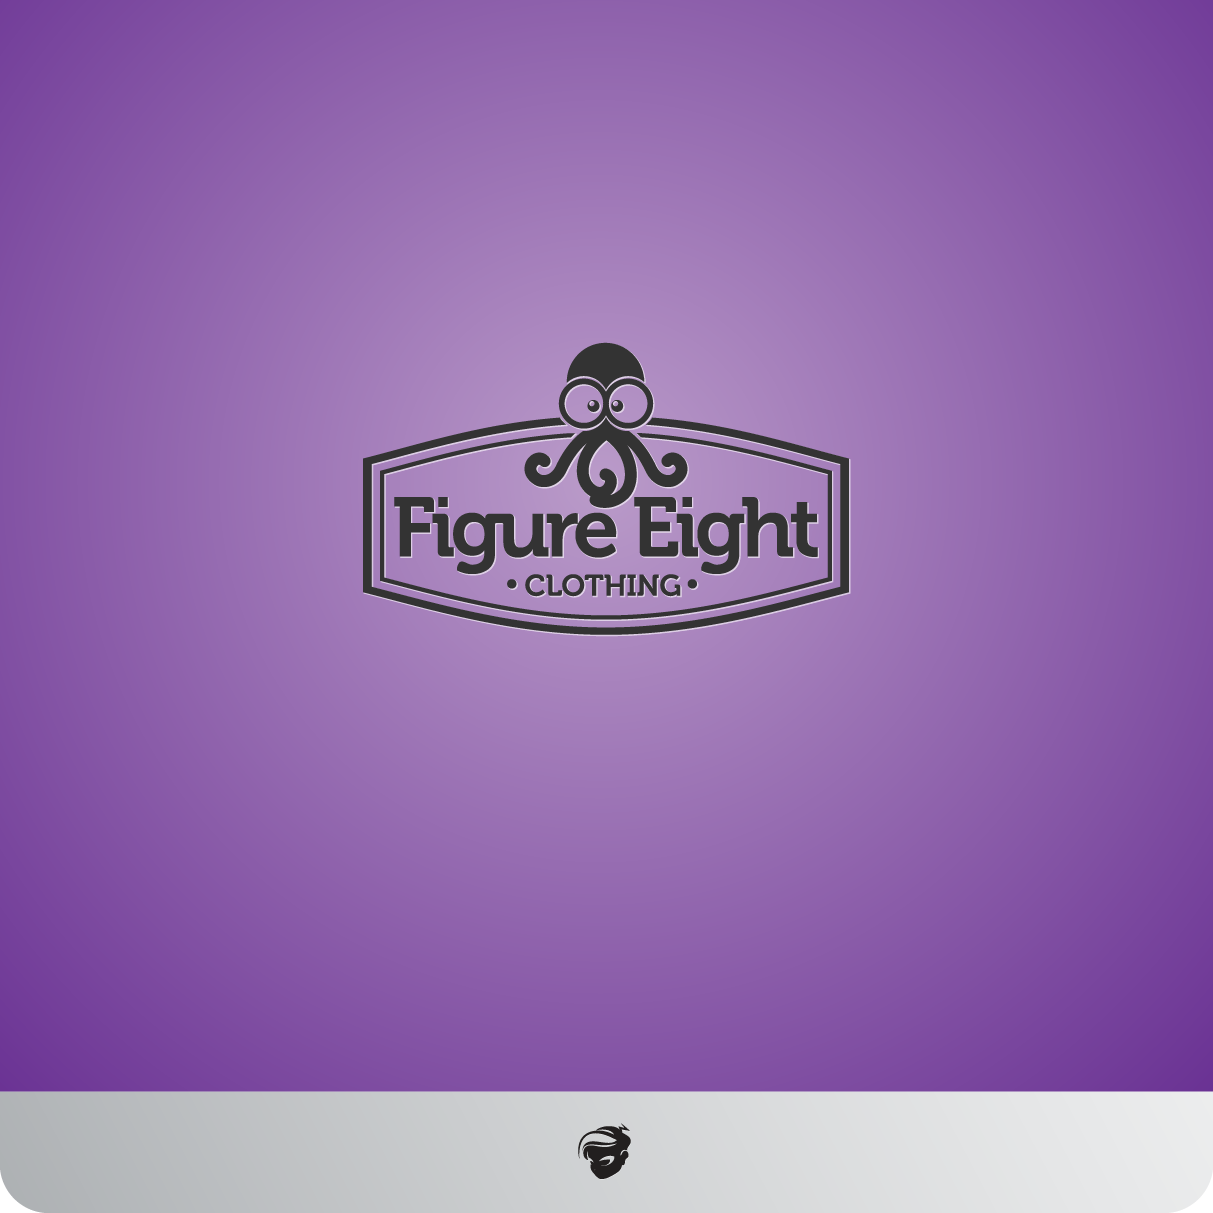 Logo Design by zesthar - Entry No. 25 in the Logo Design Contest Artistic Logo Design for Figure Eight Clothing.